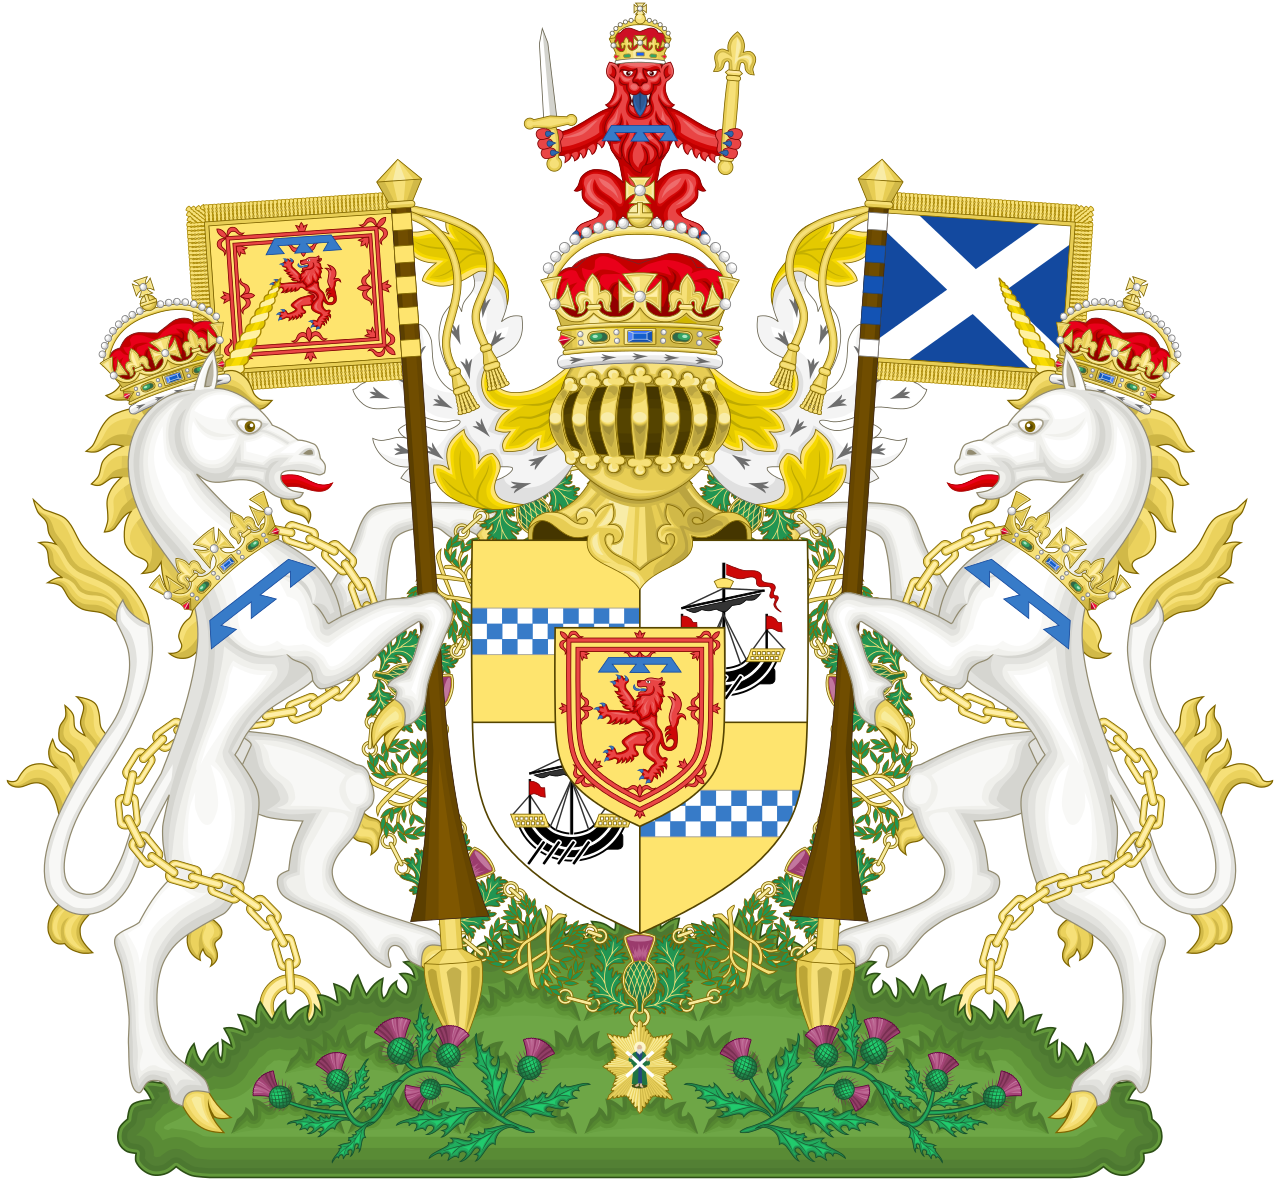 Coat of Arms of the Duke of Rothesay